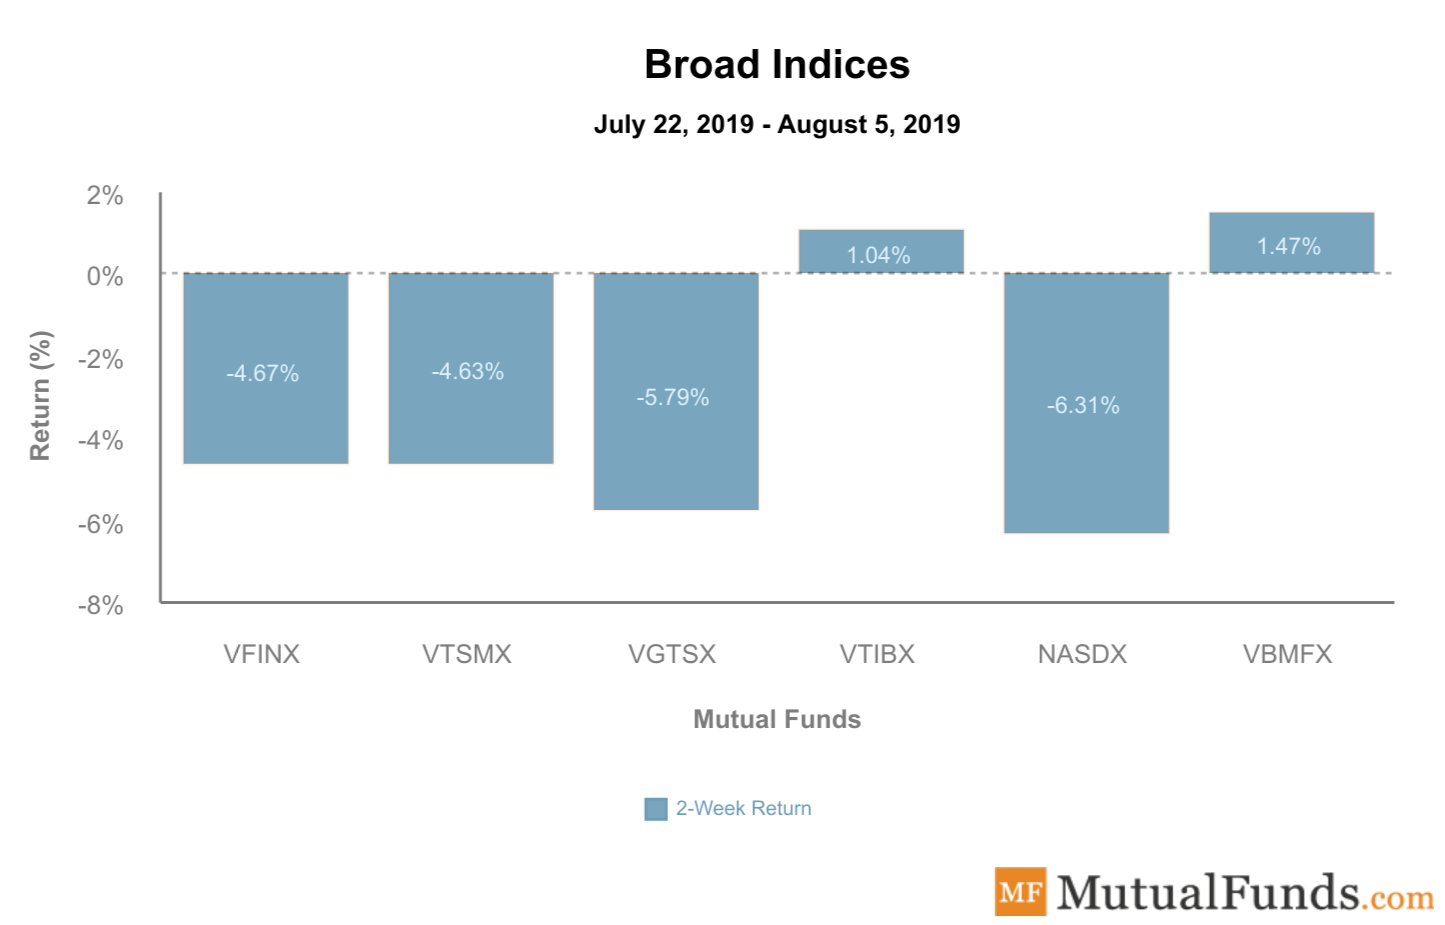 Broad Indices August 6 2019